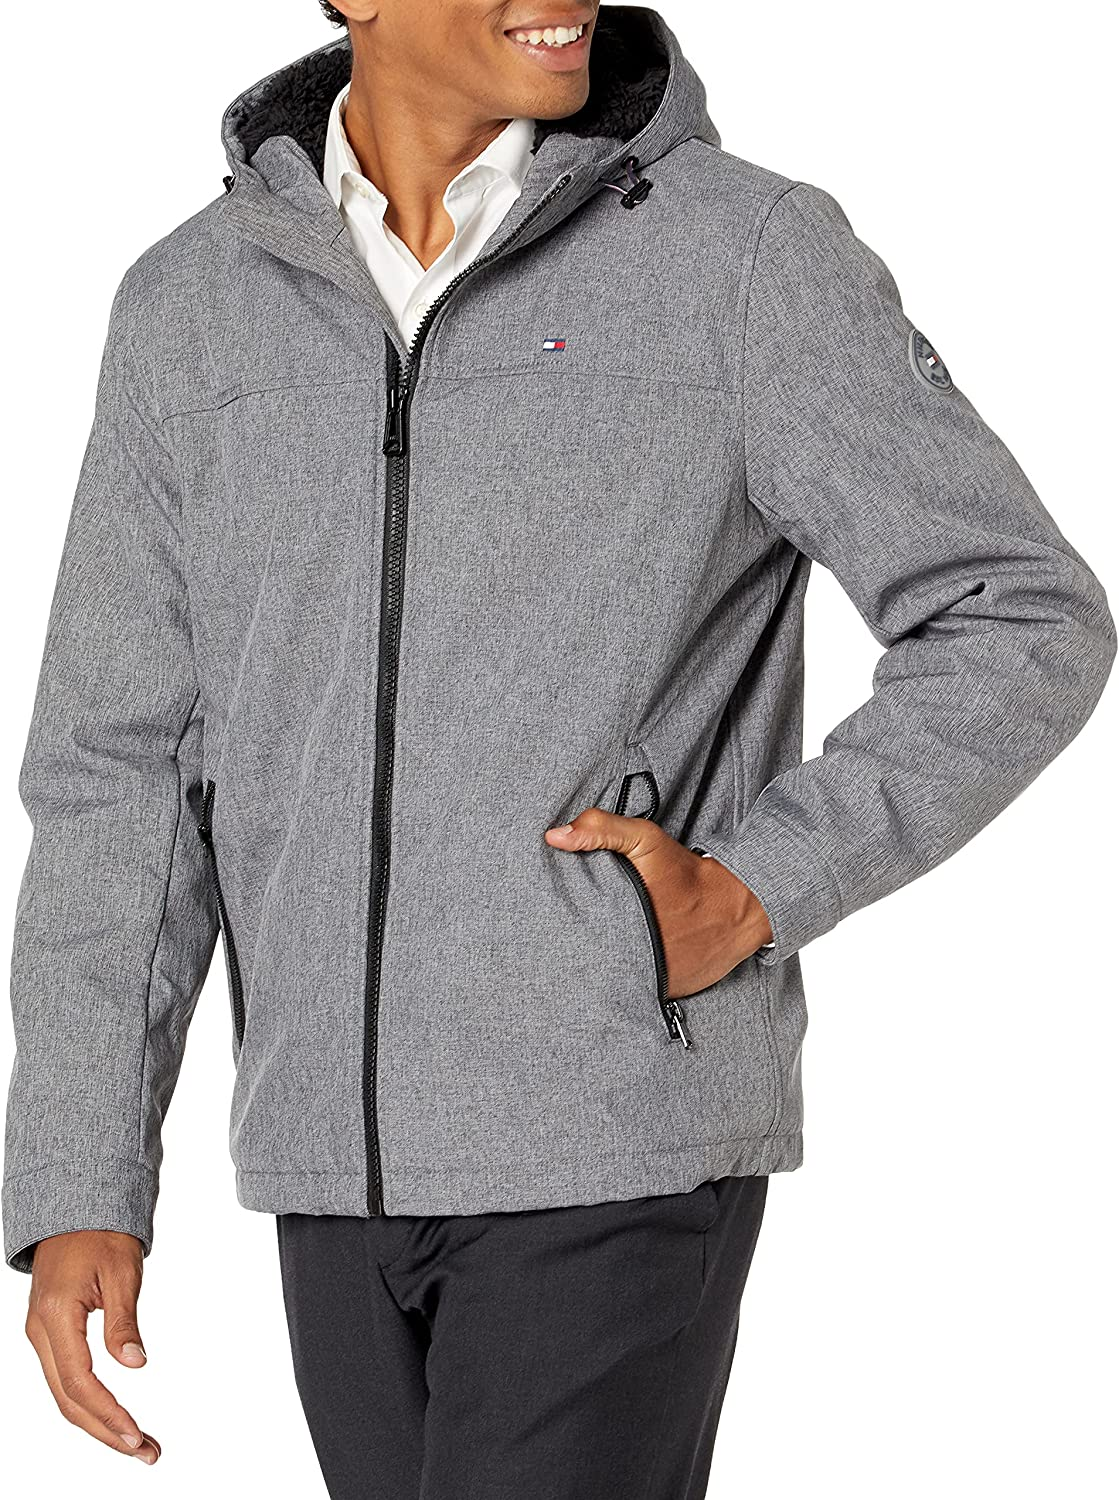 Tommy Hilfiger Men's 2021new Rapid rise shipping free Performance Hooded Jacket Bottom with Open